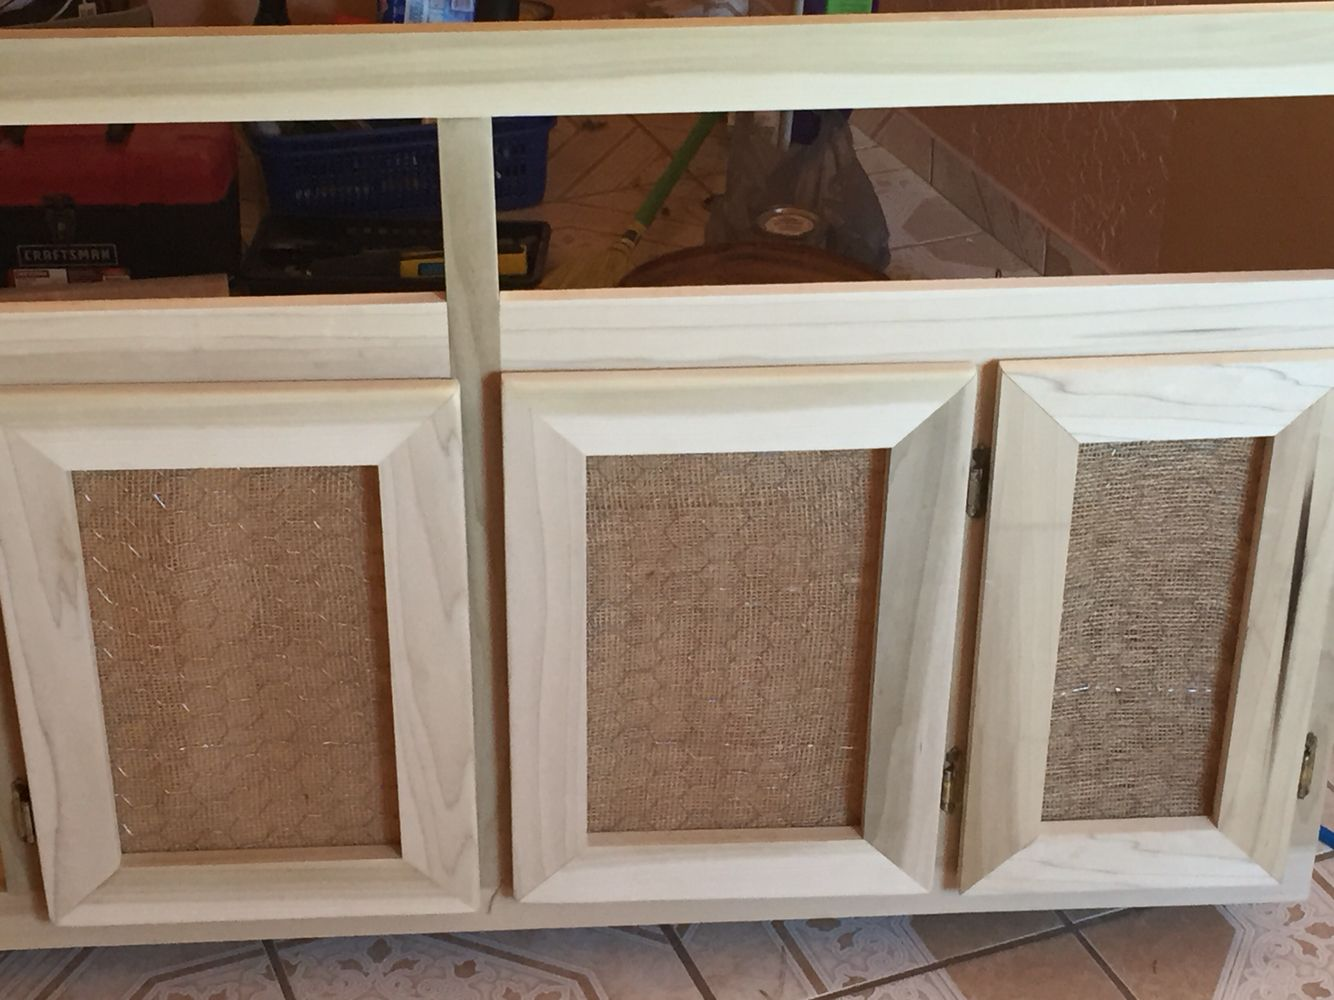 Diy cabinet door used burlap and chicken wire for a more ...